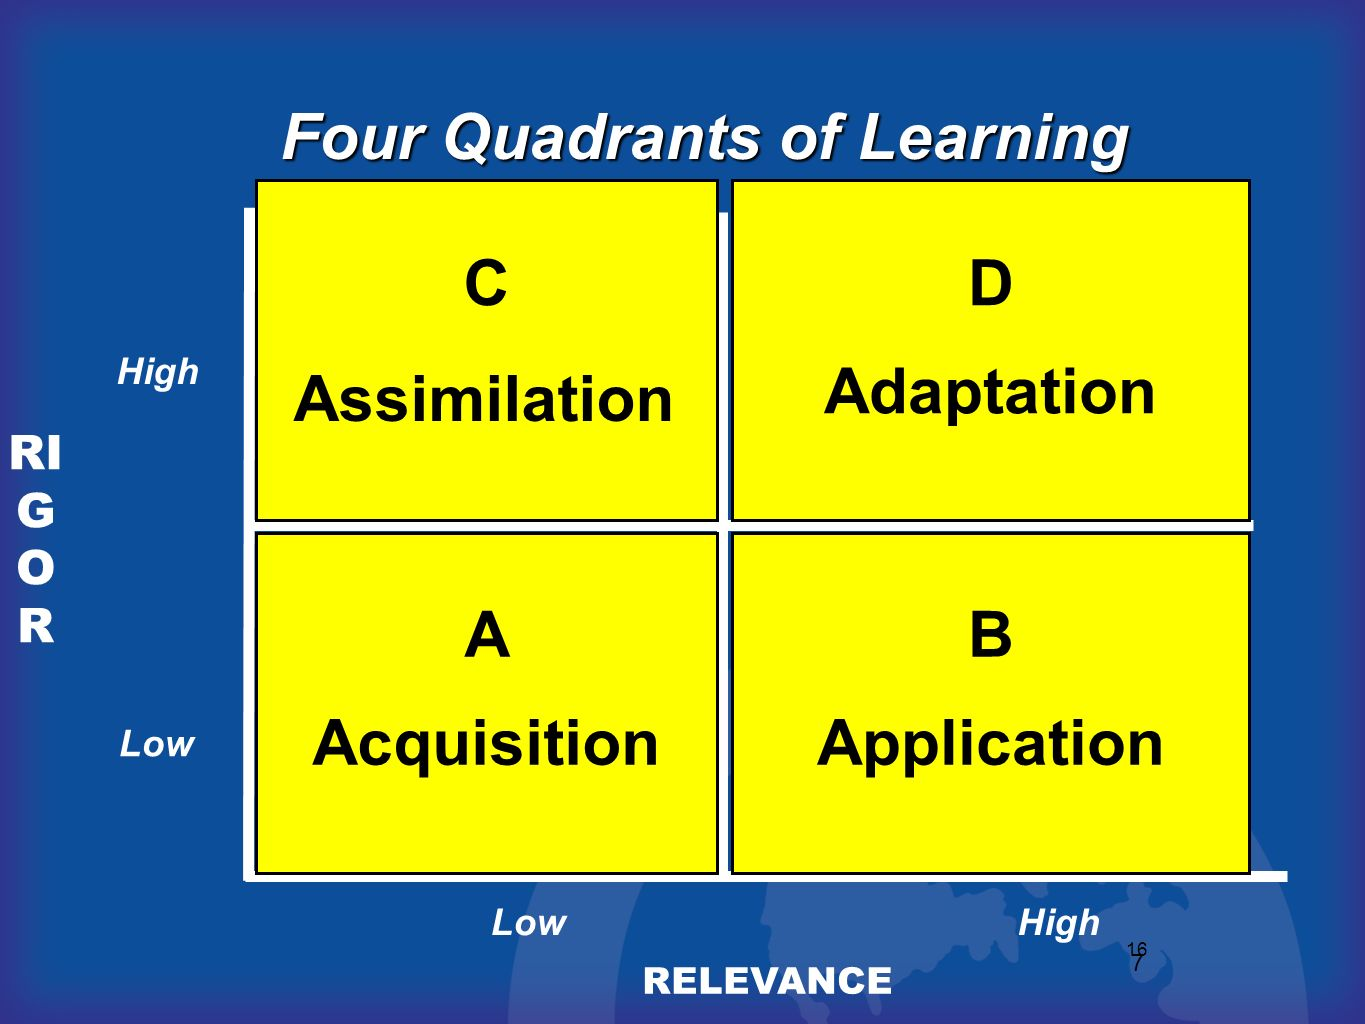 Four Quadrants of Learning